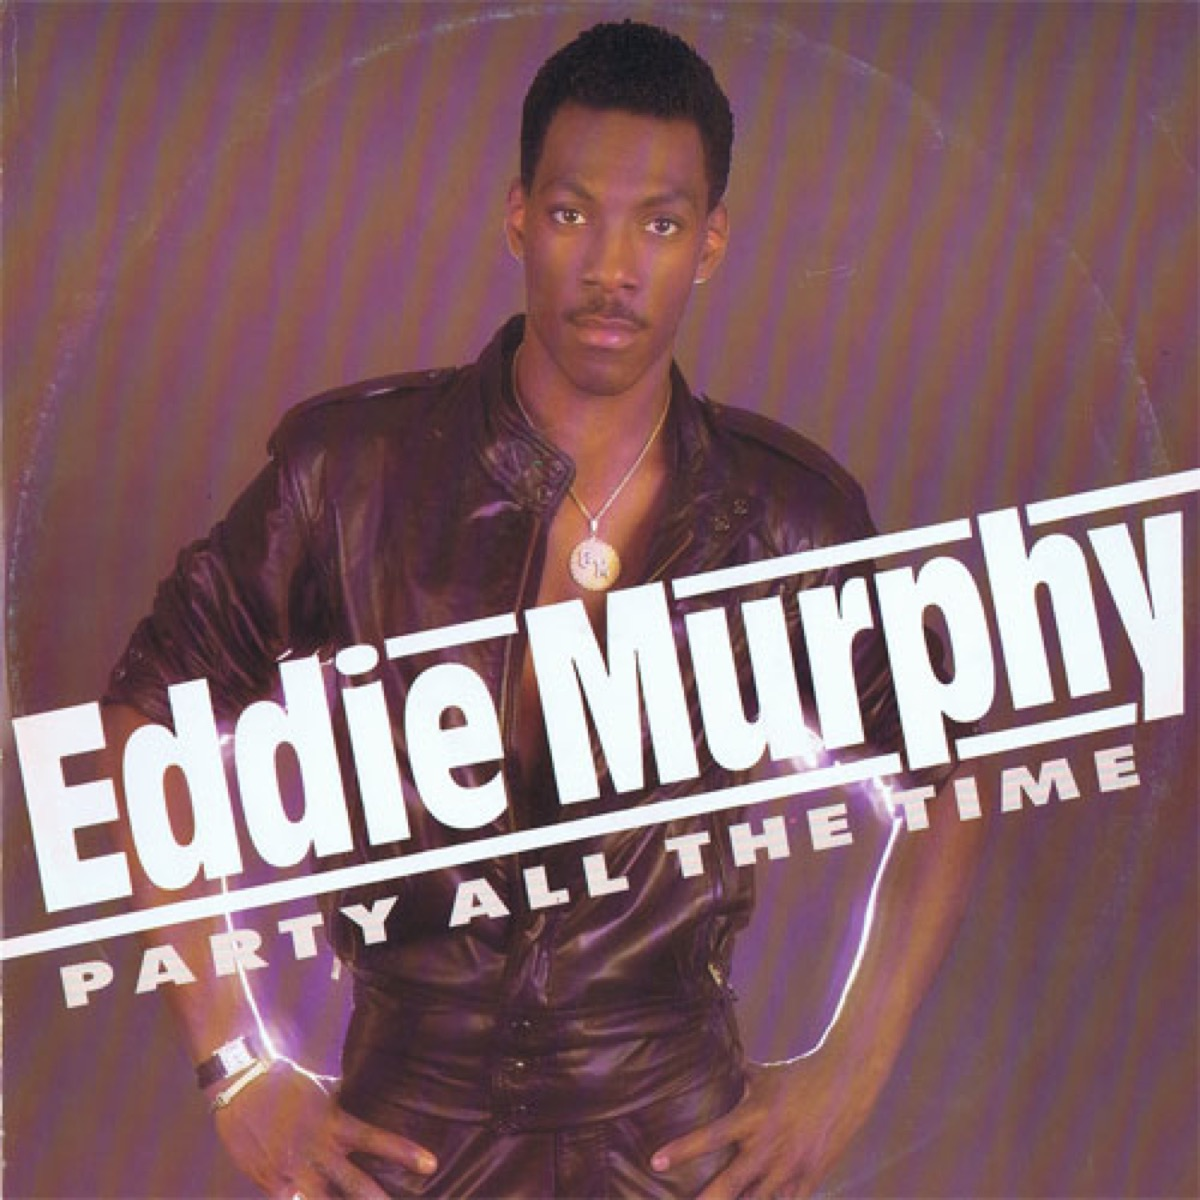 Eddie Murphy Party All The Time 1980s One-Hit Wonders